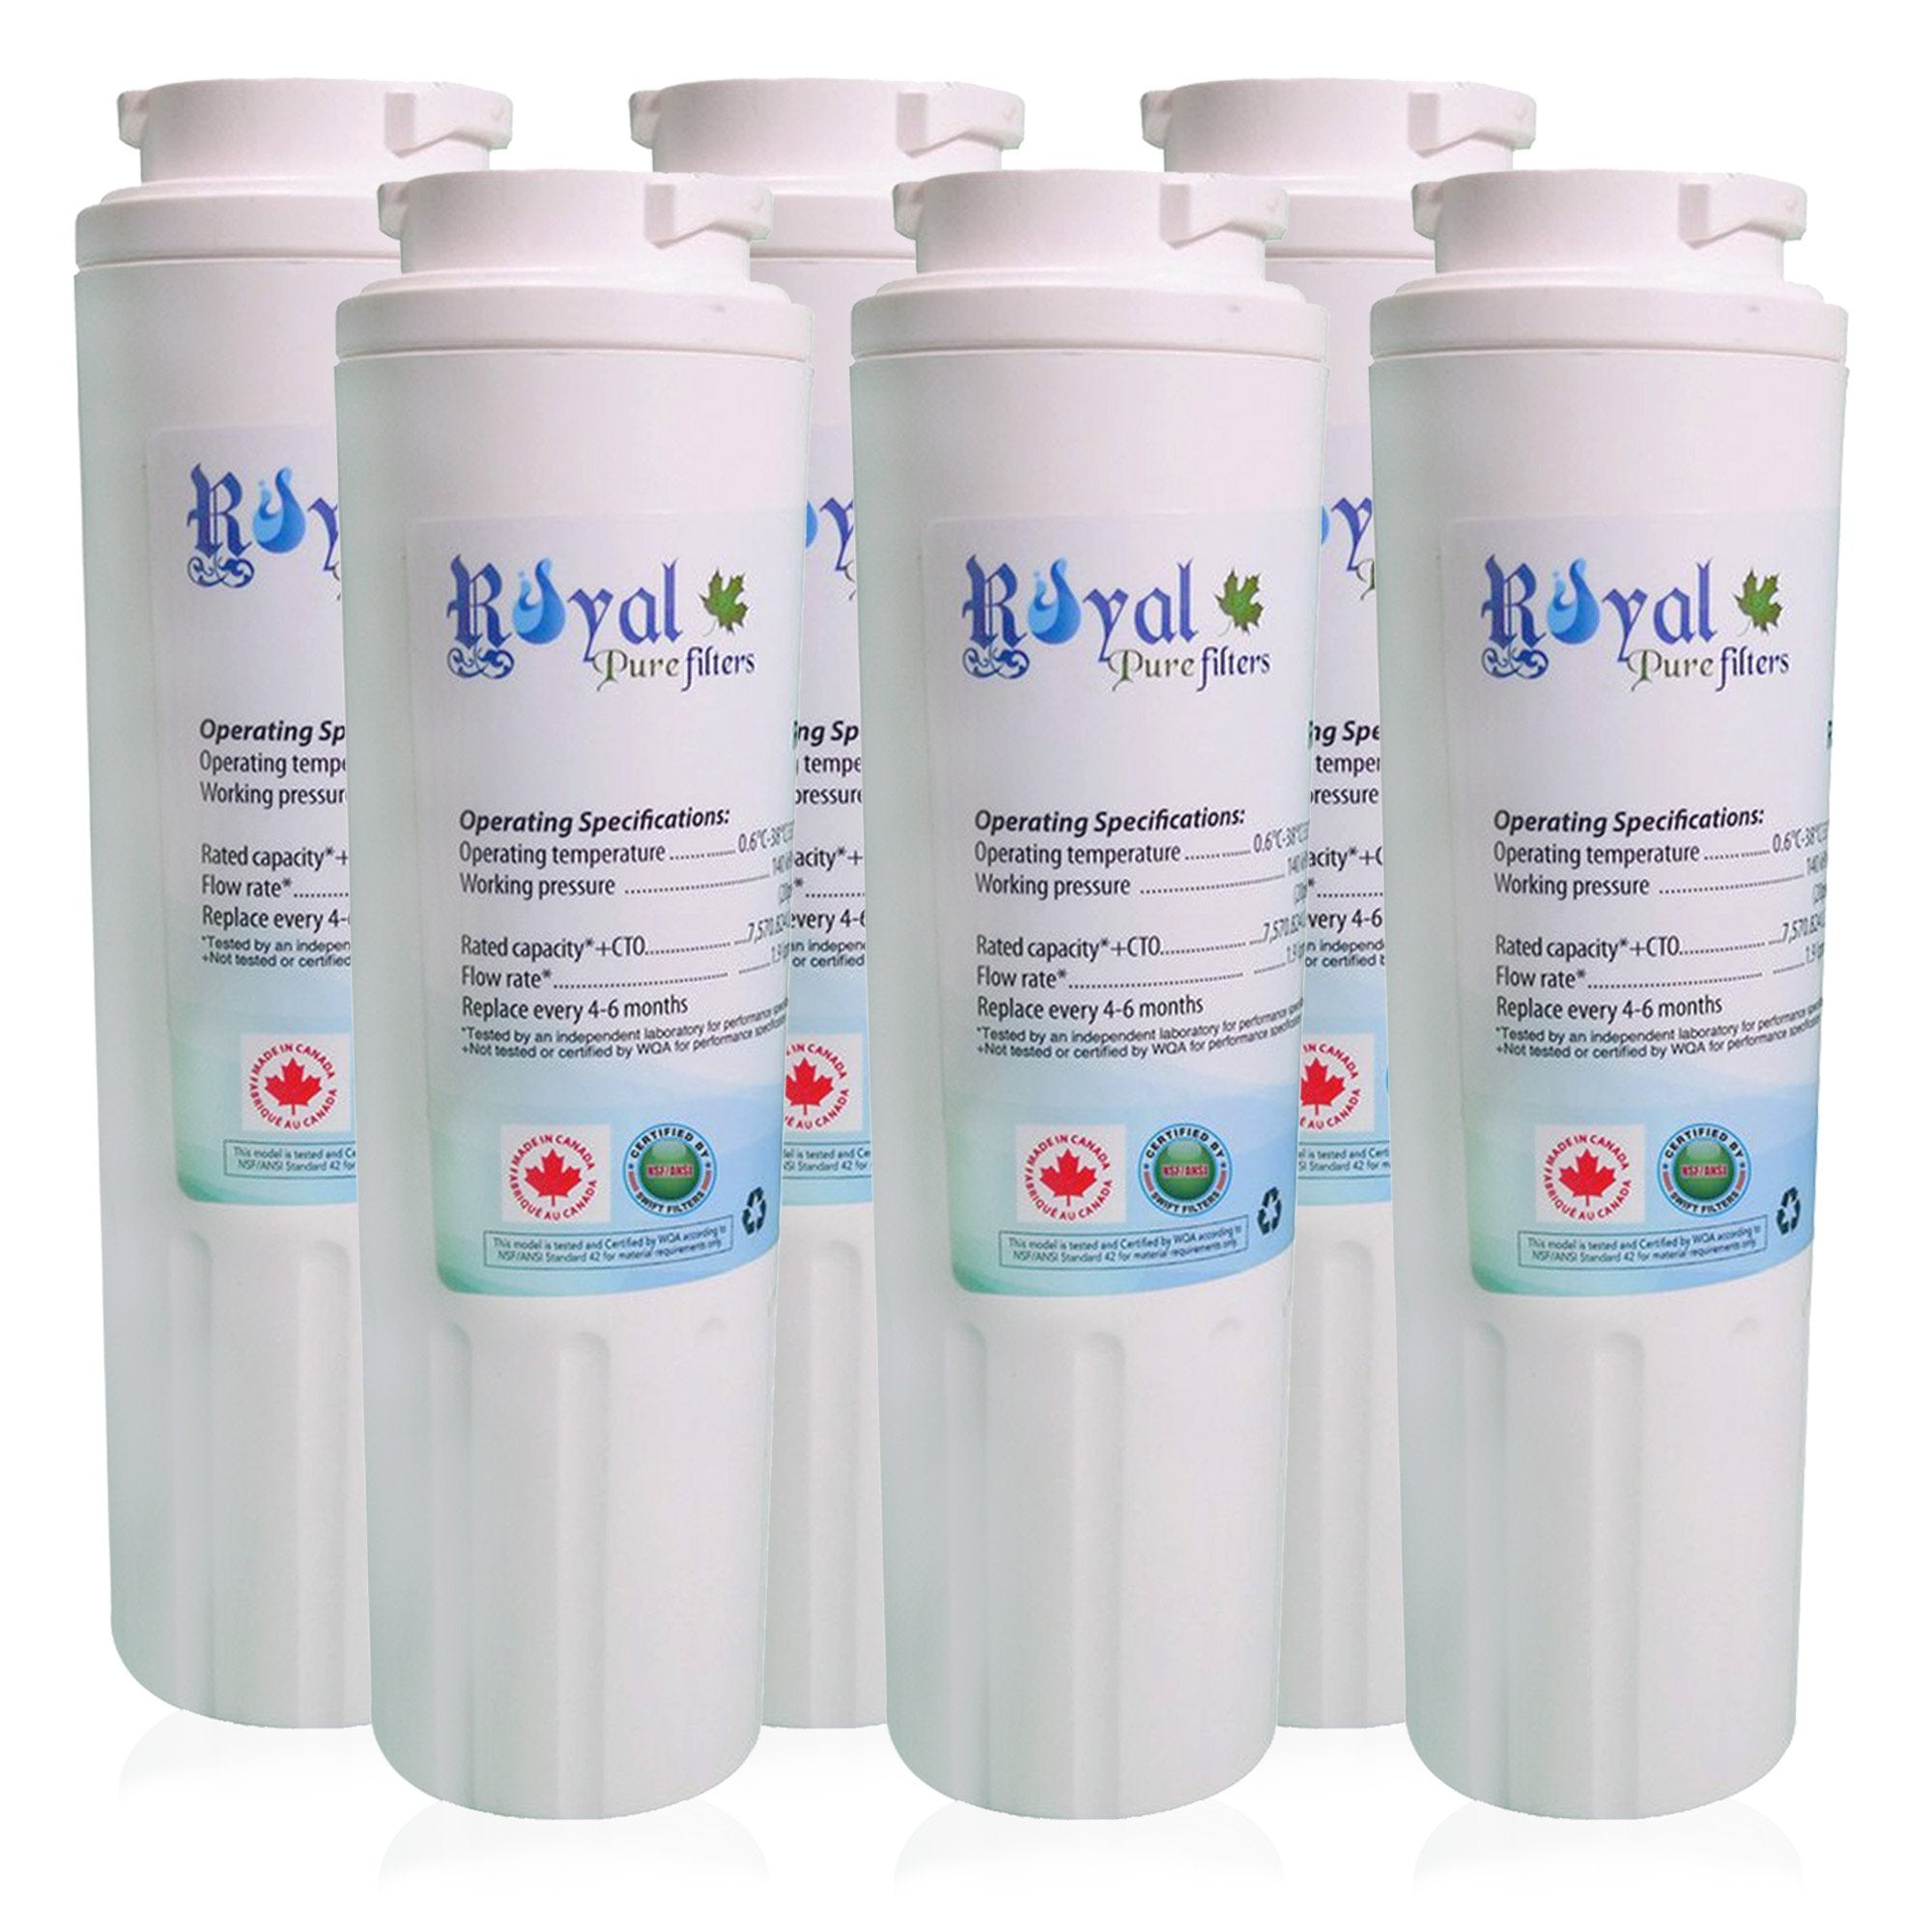 EveryDrop EDR4RXD1, Maytag Ukf8001 & Whirlpool 4396395 Compatible CTO Refrigerator Water Filter 6 pack